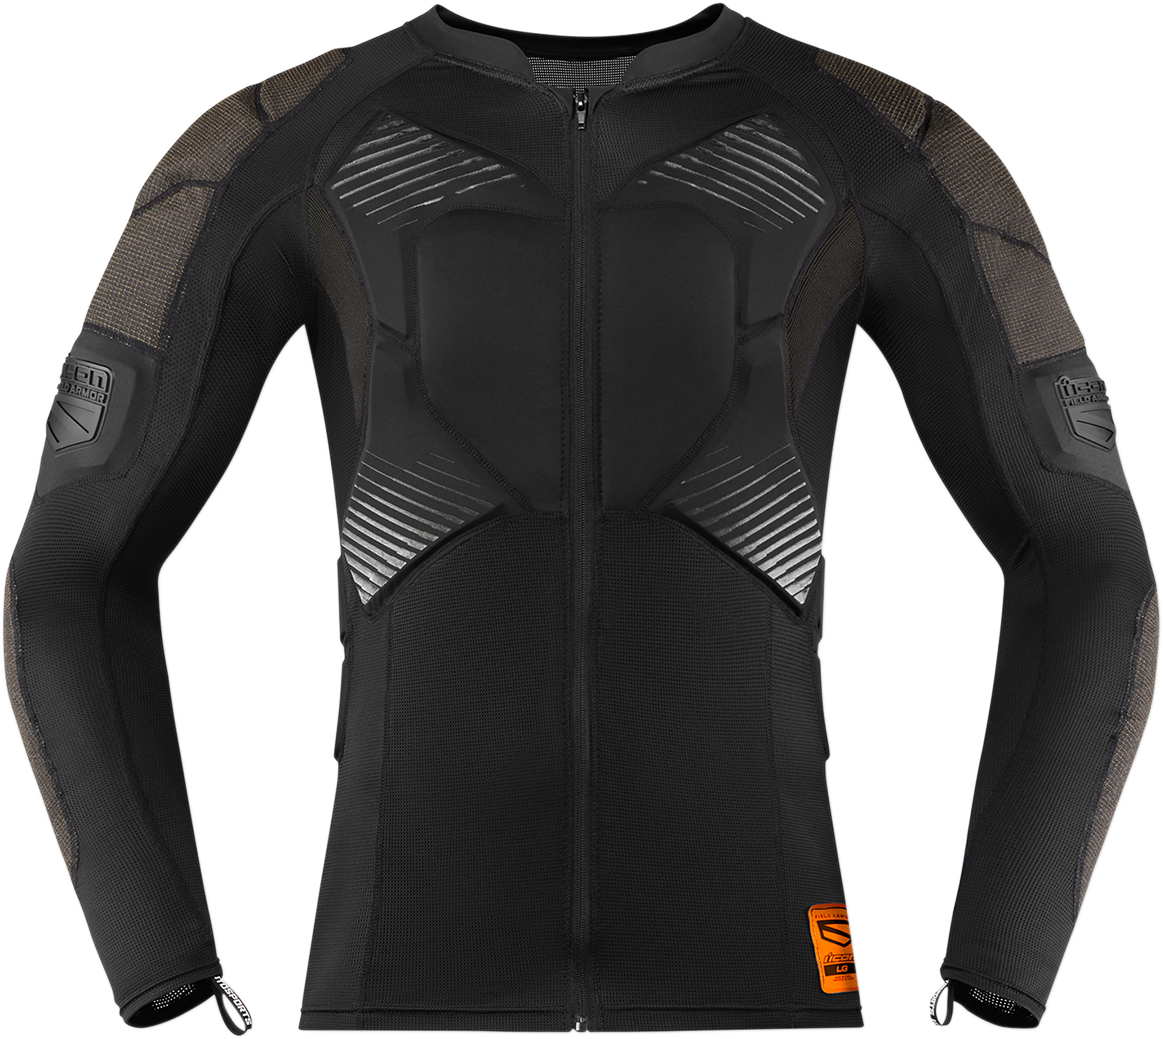 Icon Unisex Black Field Armor Chest Compression motorcycle Riding Under Shirt